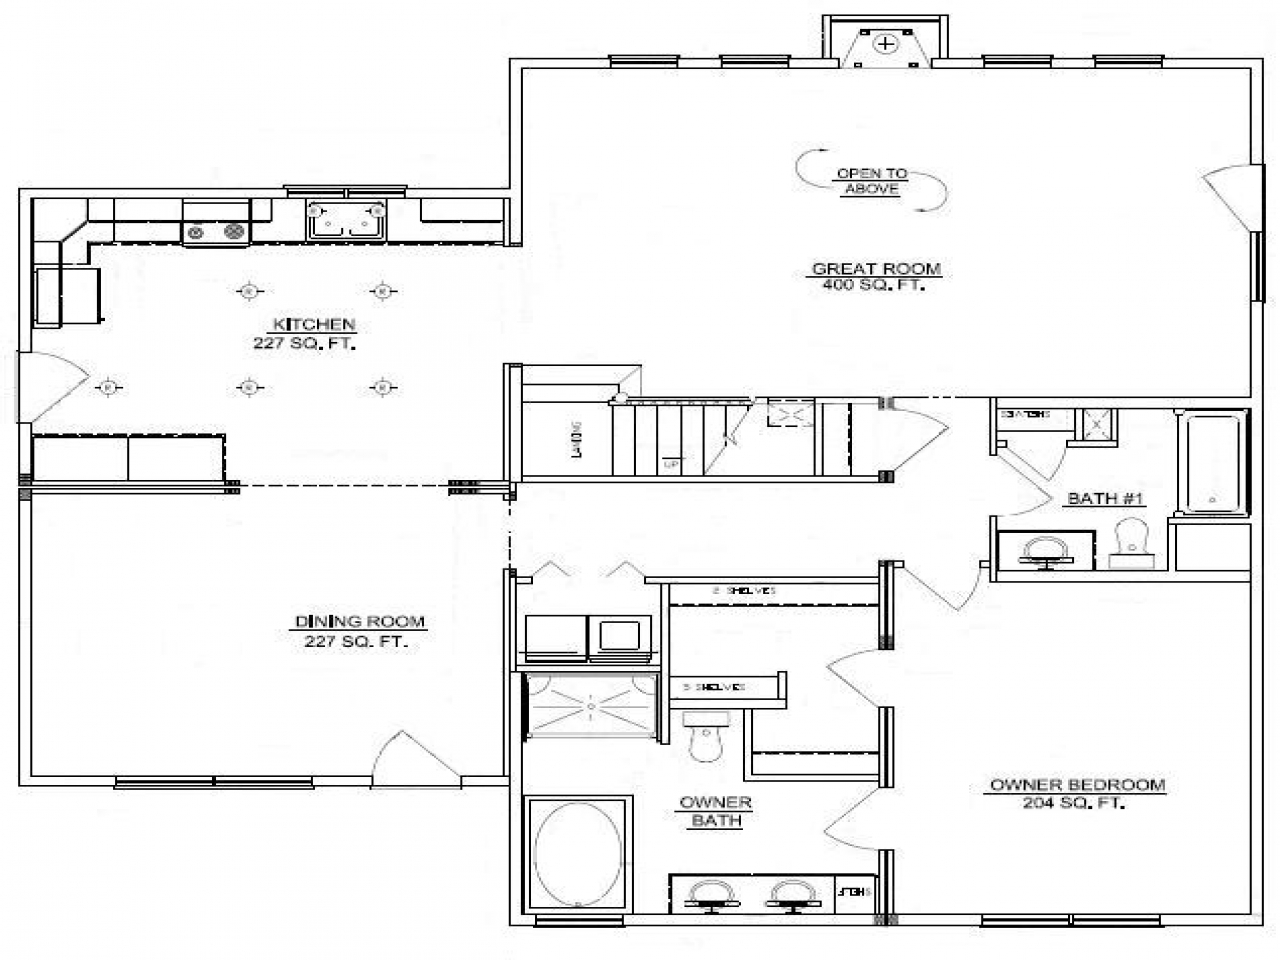 3 Bedroom Log Cabin Floor Plans 3 Bedroom Double Wide